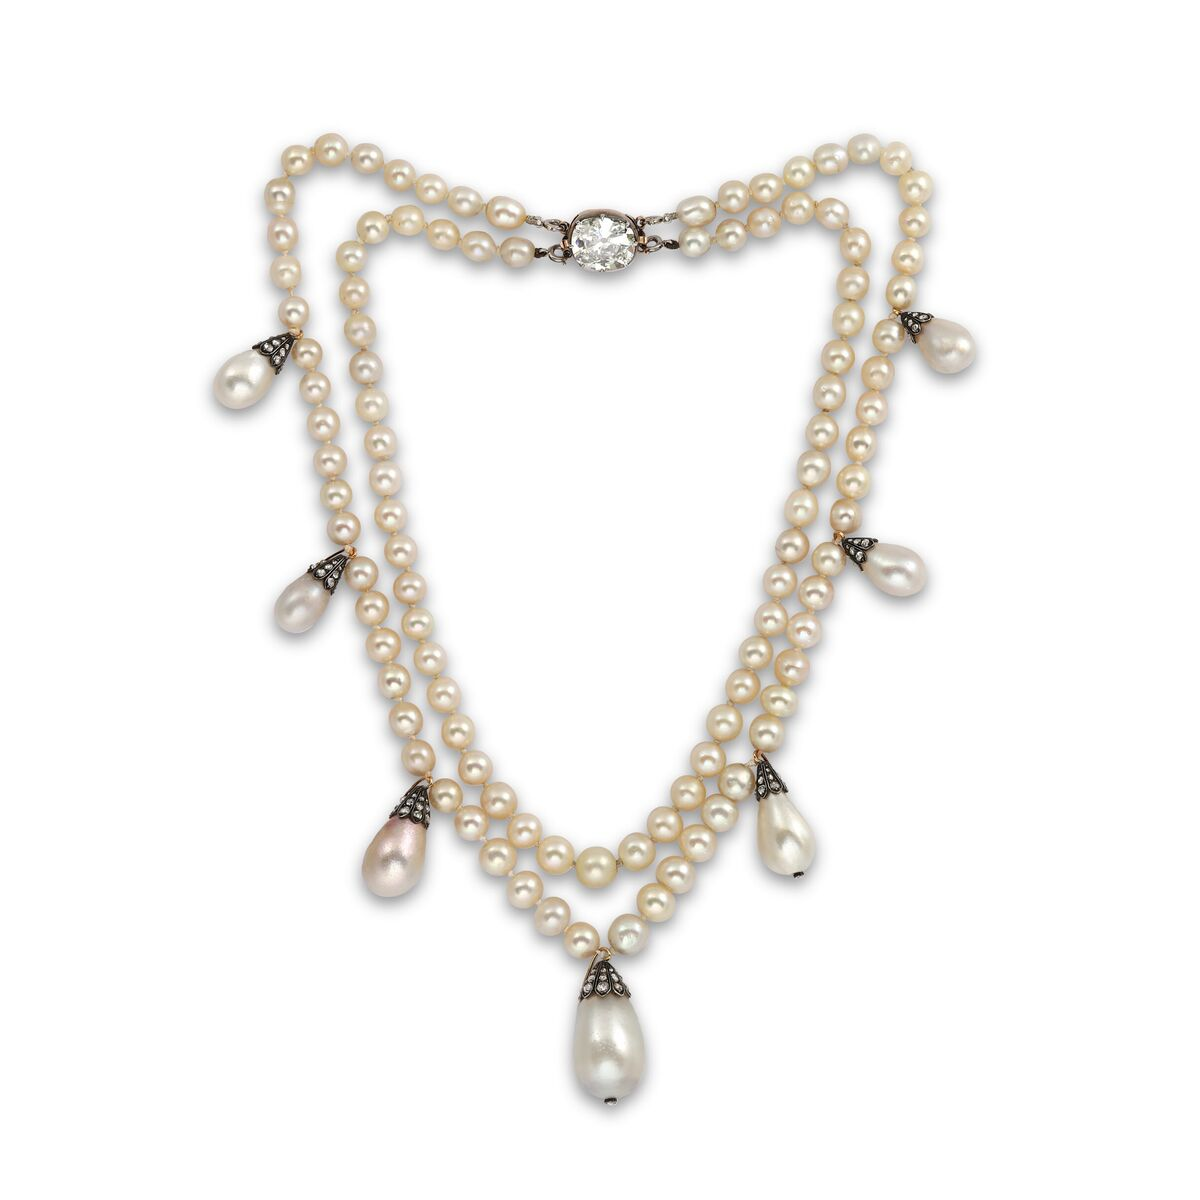 Queen Josefina of Sweden's natural pearl and diamond necklace. Courtesy of Symbolic & Chase, London.